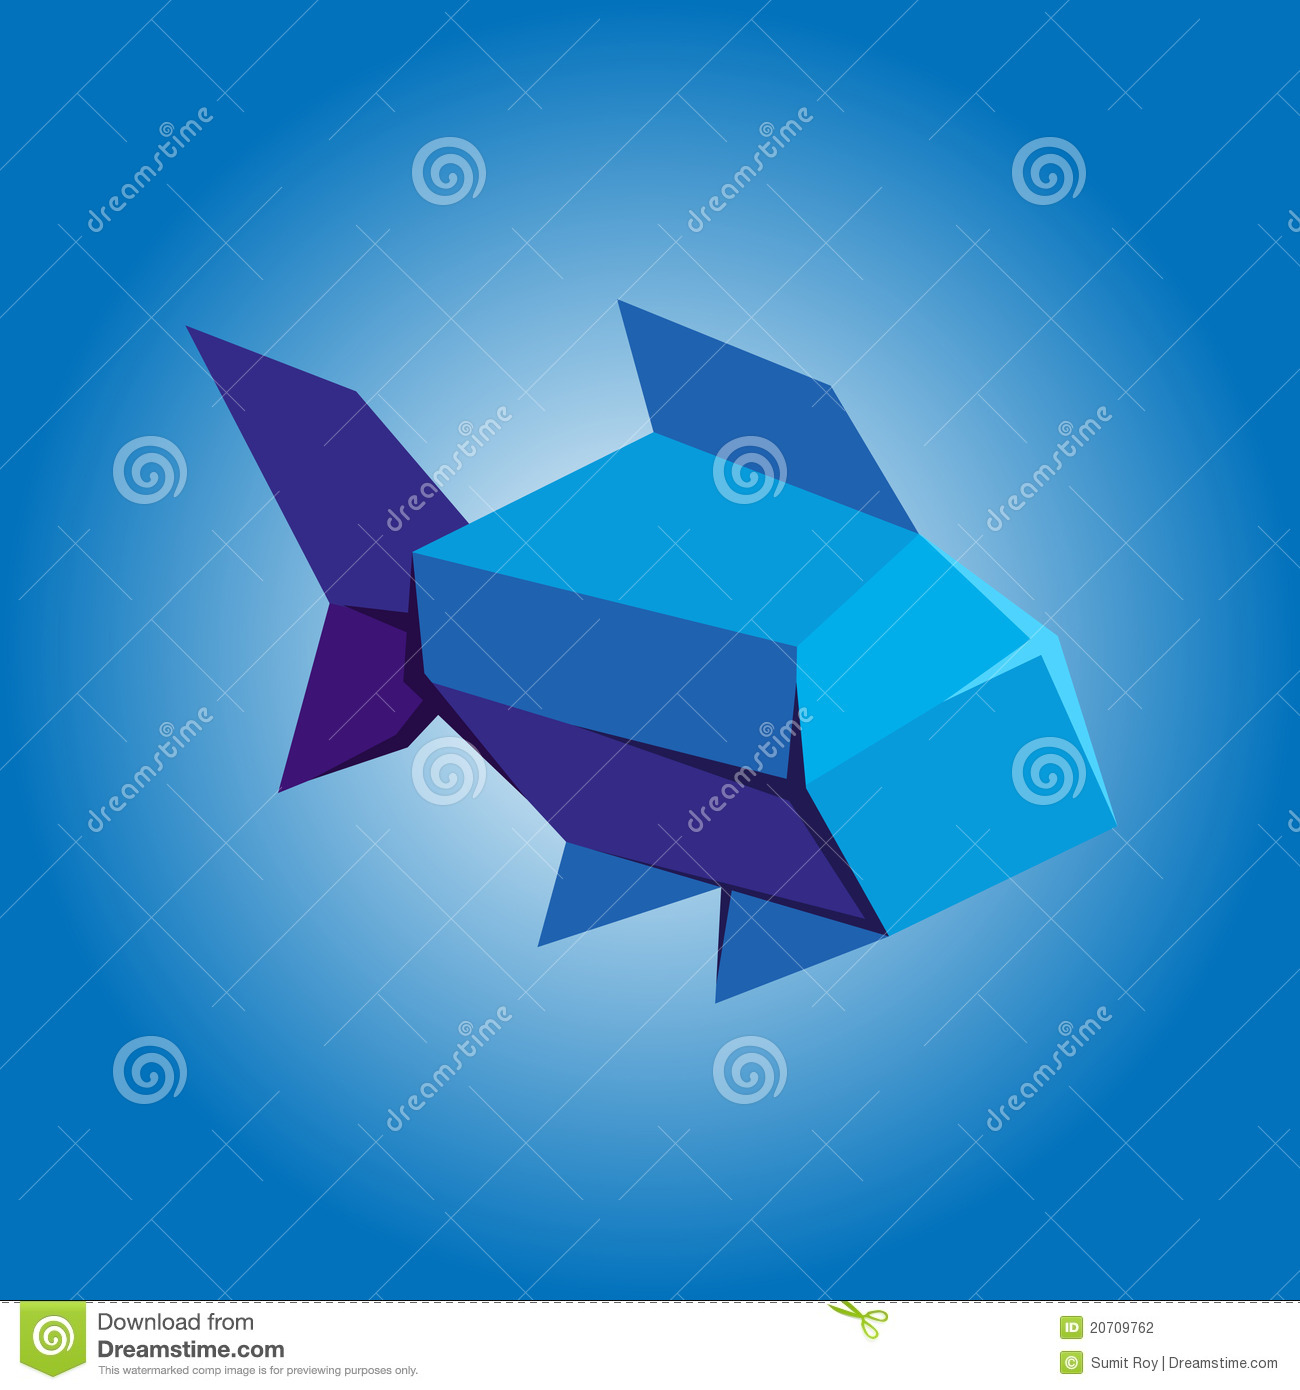 Simplistic origami fish stock illustration illustration of simplistic origami fish jeuxipadfo Images